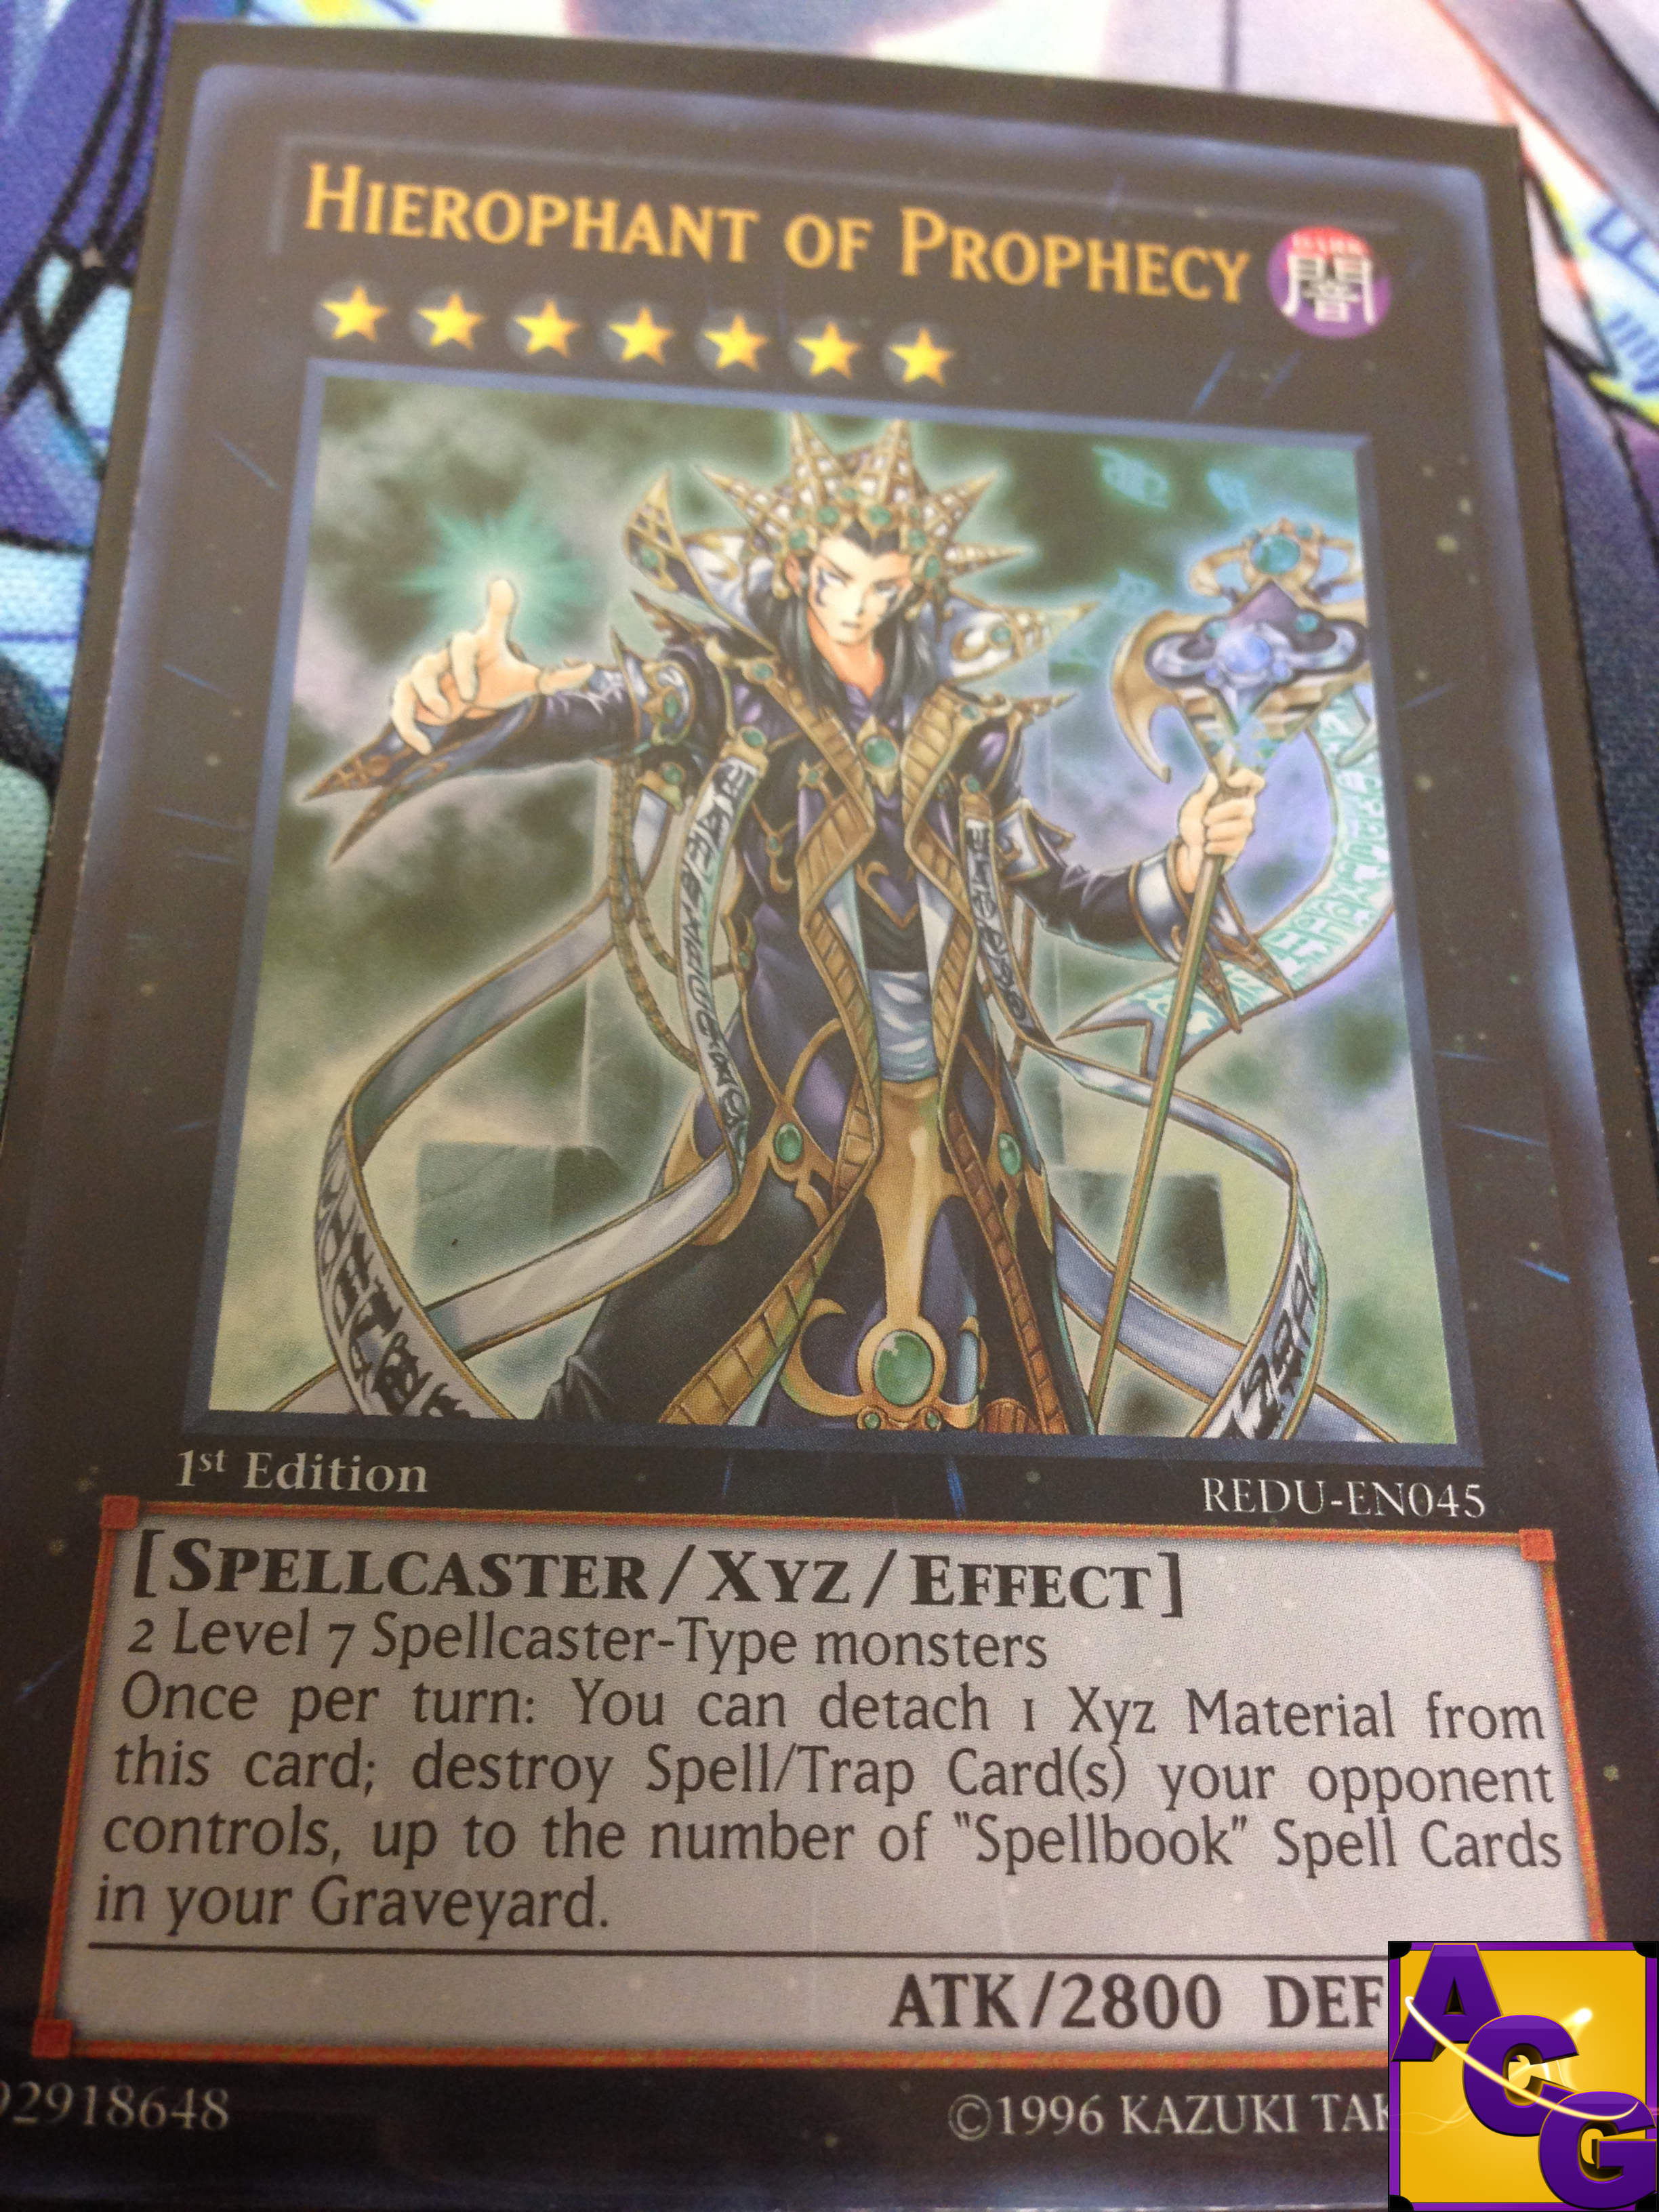 Yu-Gi-Oh! Card Review: Hierophant of Prophecy - Awesome Card